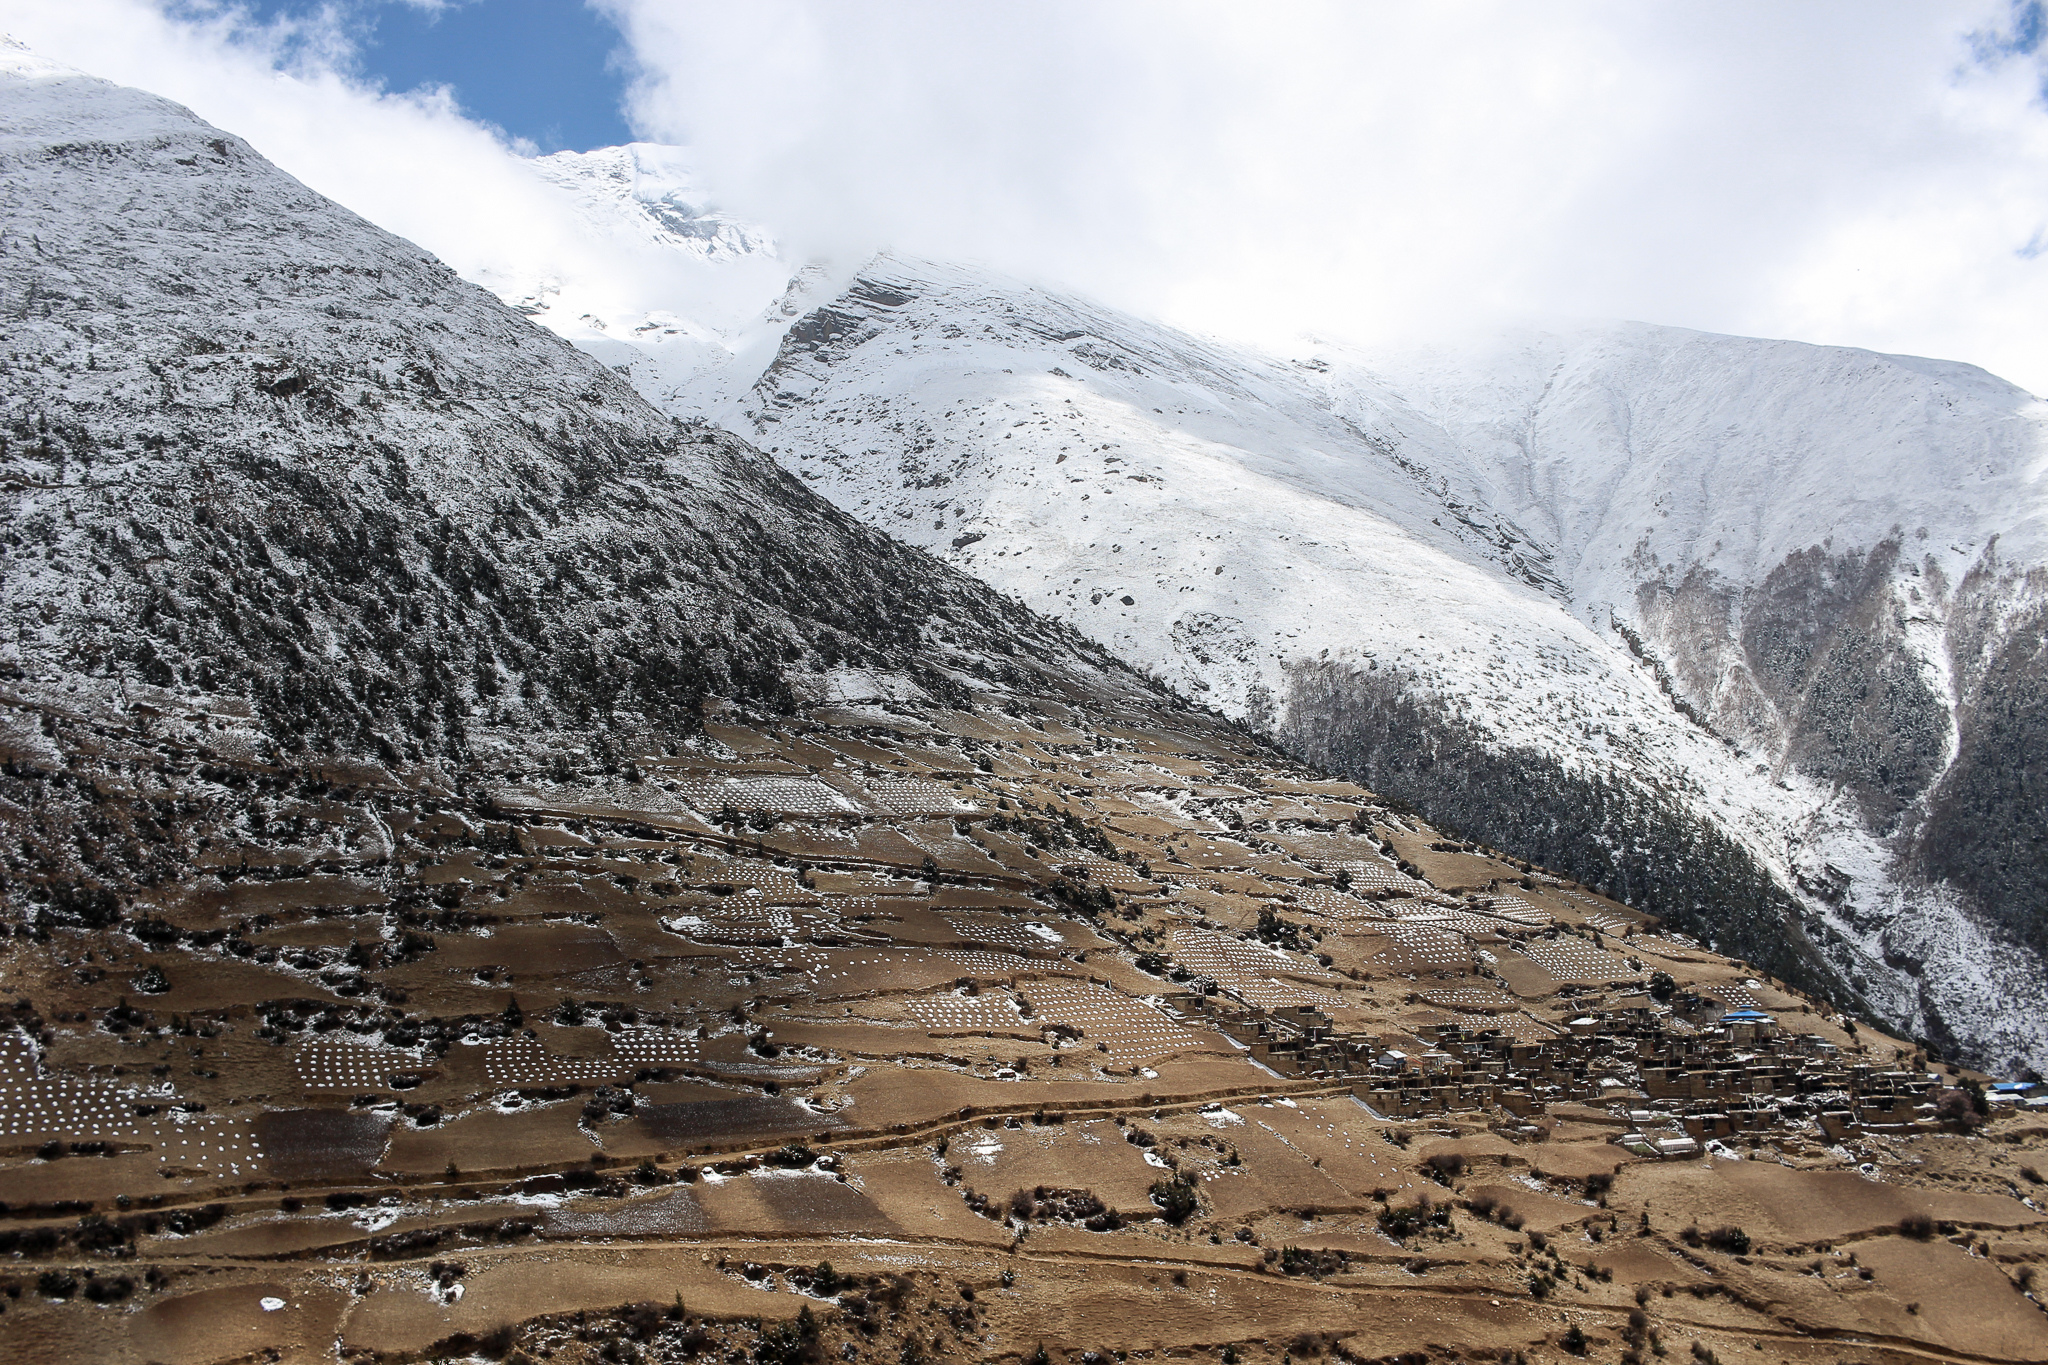 Upper Pisang village on the Annapurna Circuit after a sprinkling of snow overnight